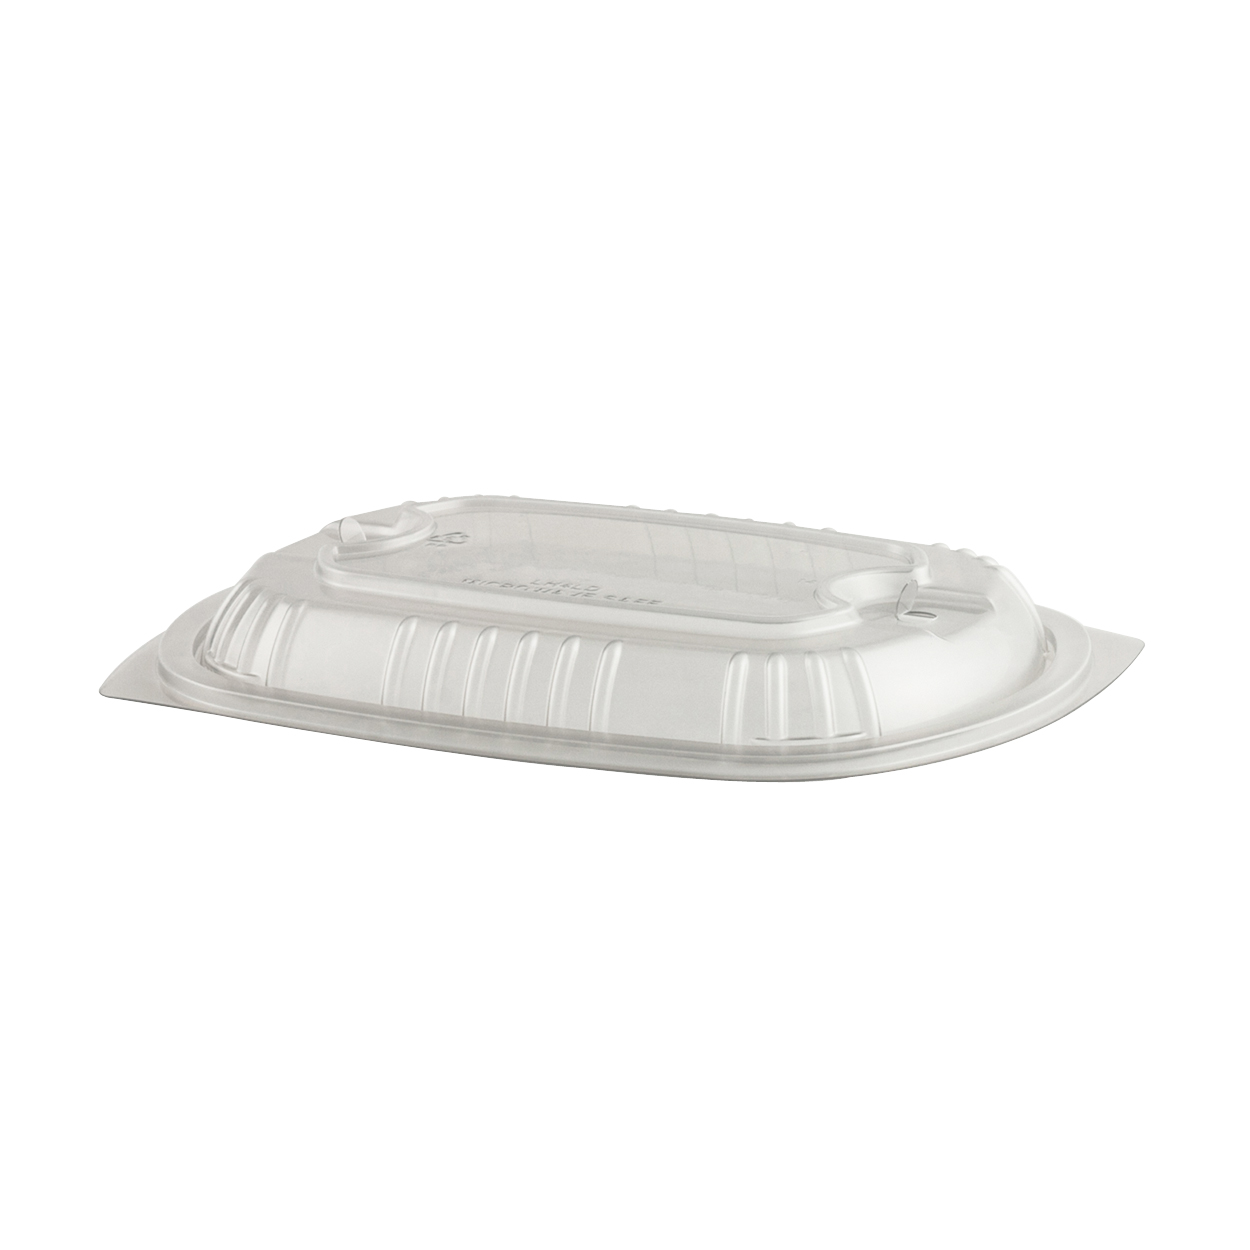 4334003 LH4LD Microraves Clear 24 oz. Microwaveable